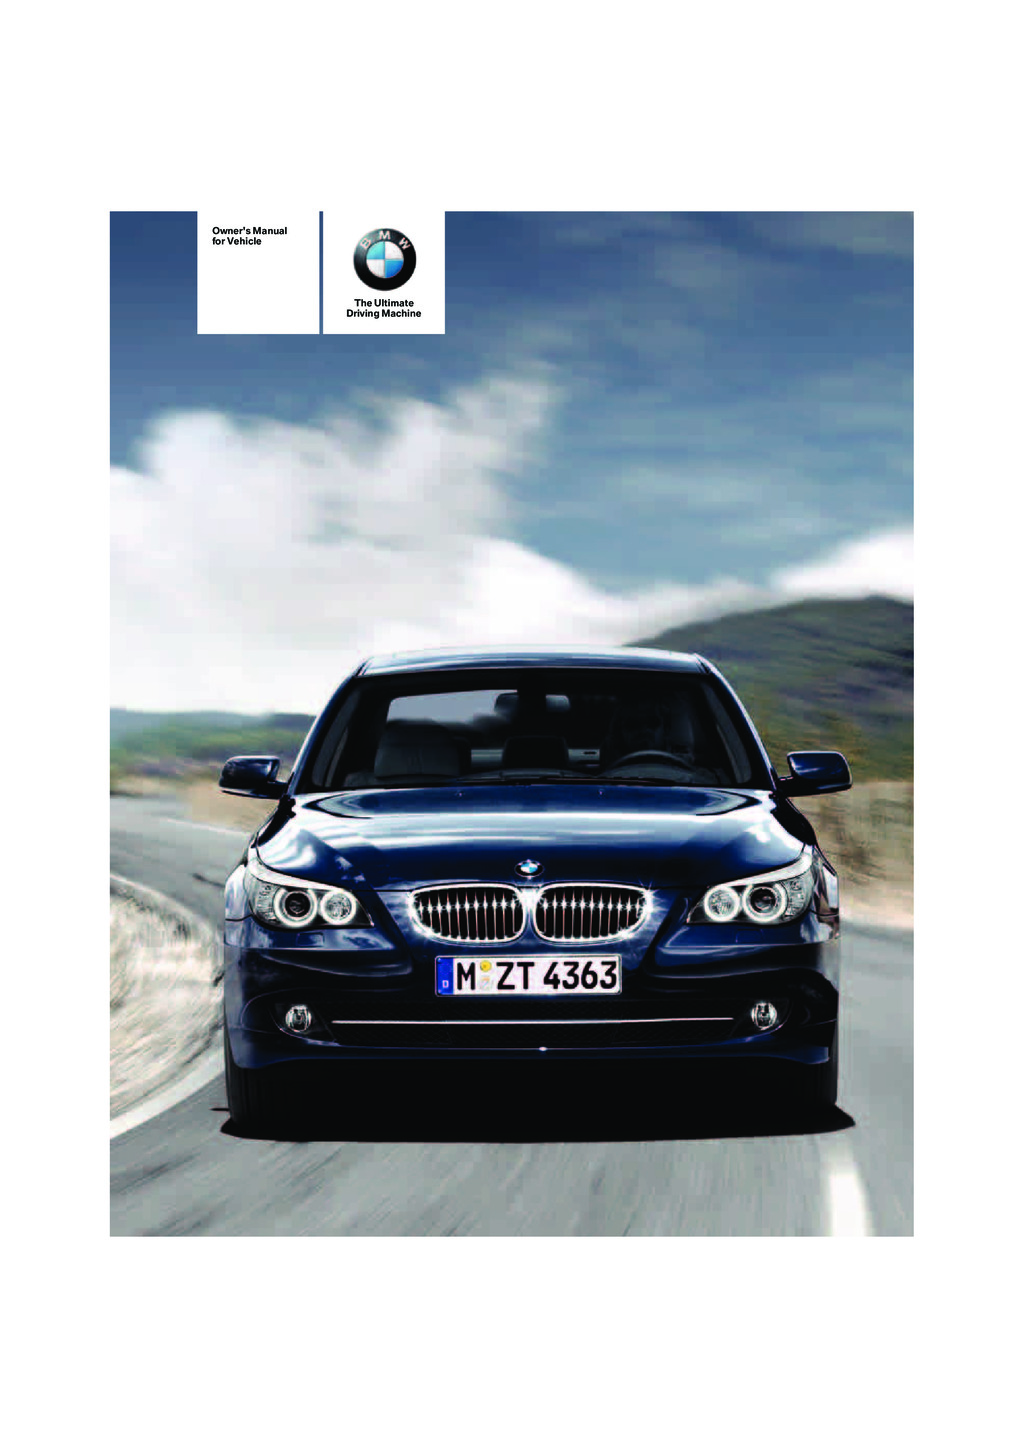 2008 BMW 5 Series owners manual